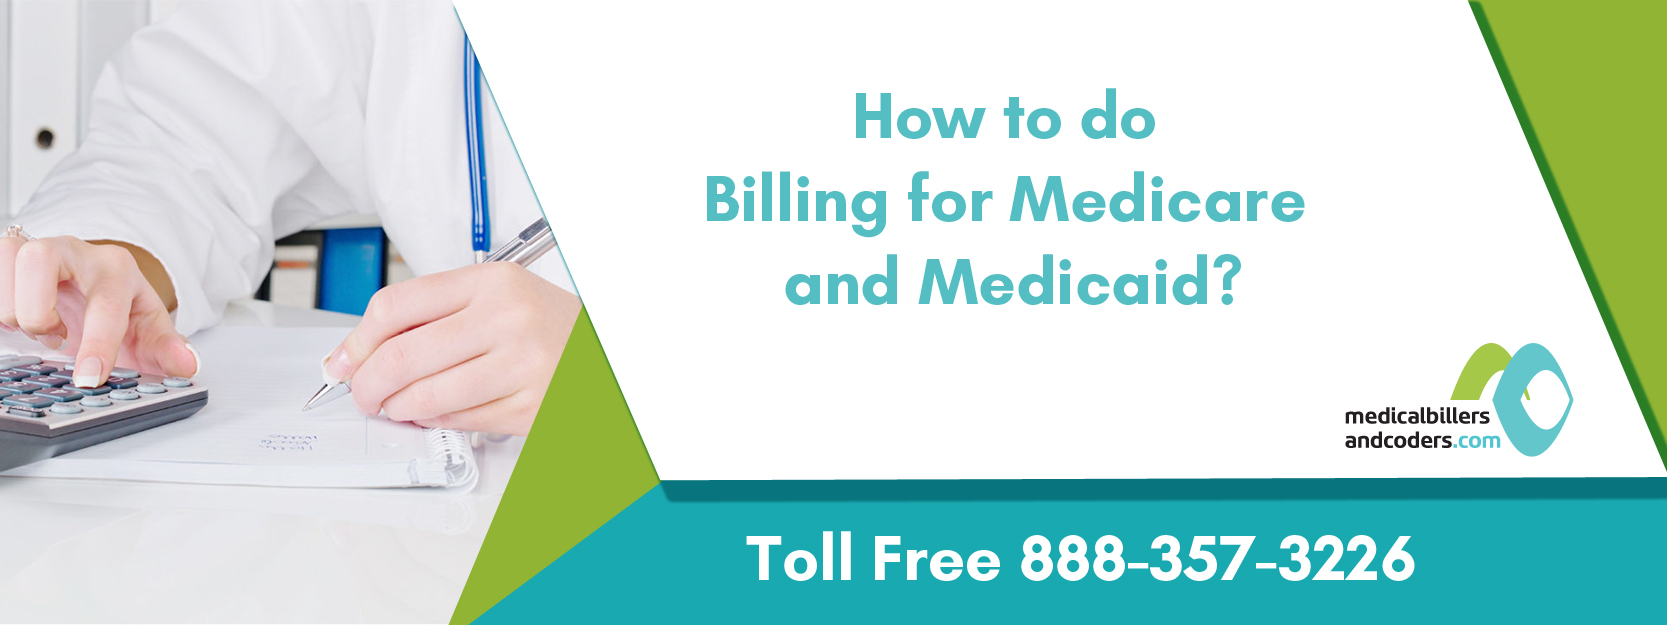 blog-how-to-do-billing-for-medicare-and-medicaid